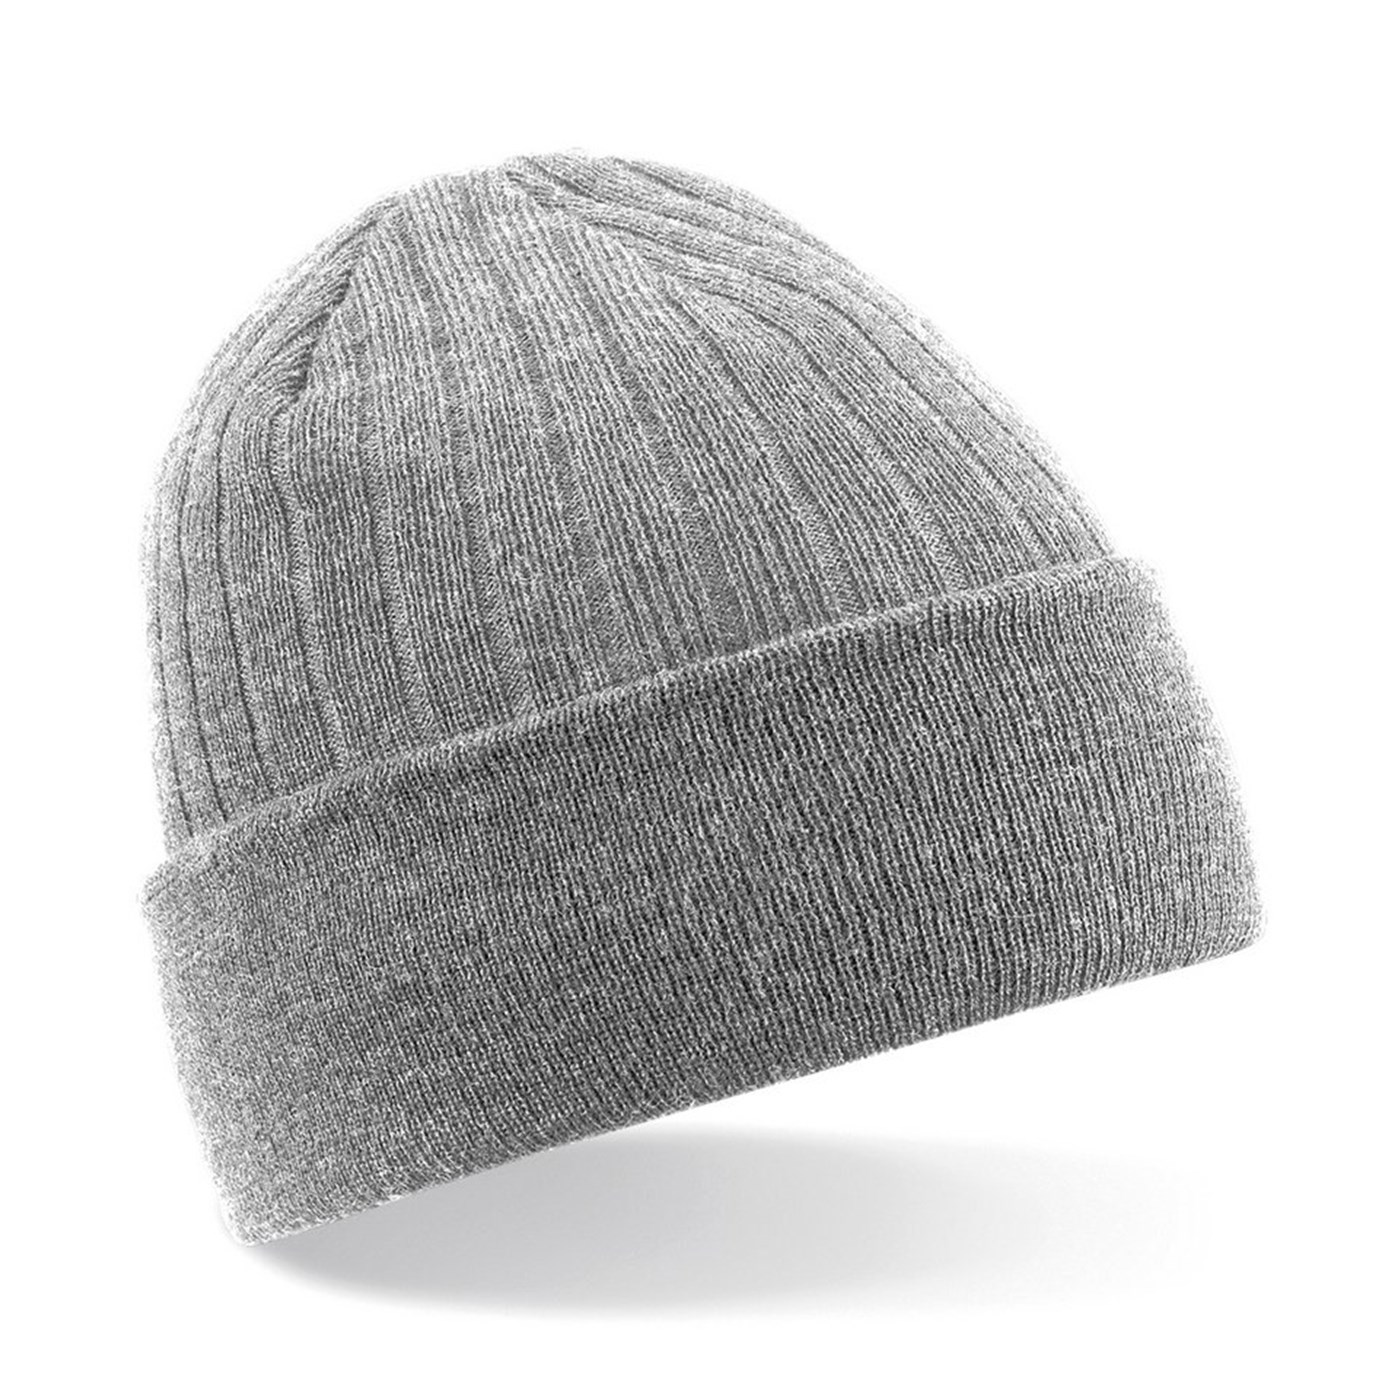 d35d75164b20d6 Beechfield Headwear Thinsulate Beanie Hat BC447